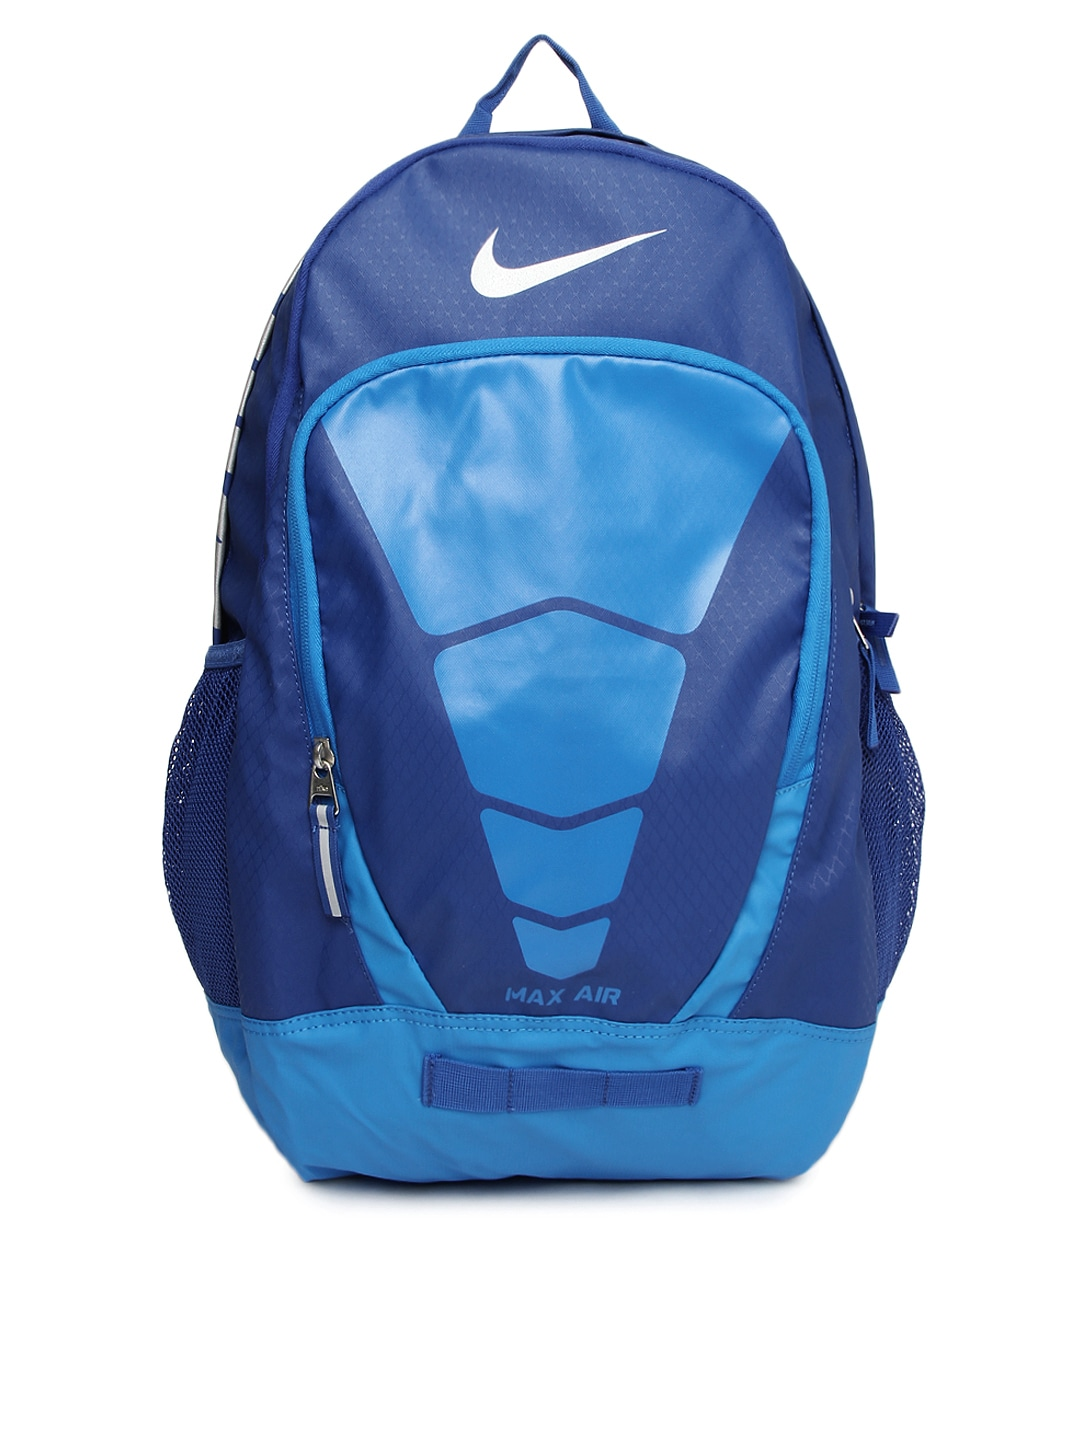 0451313e5aa Nike ba4883-402 Unisex Blue Backpack - Best Price in India   priceiq.in